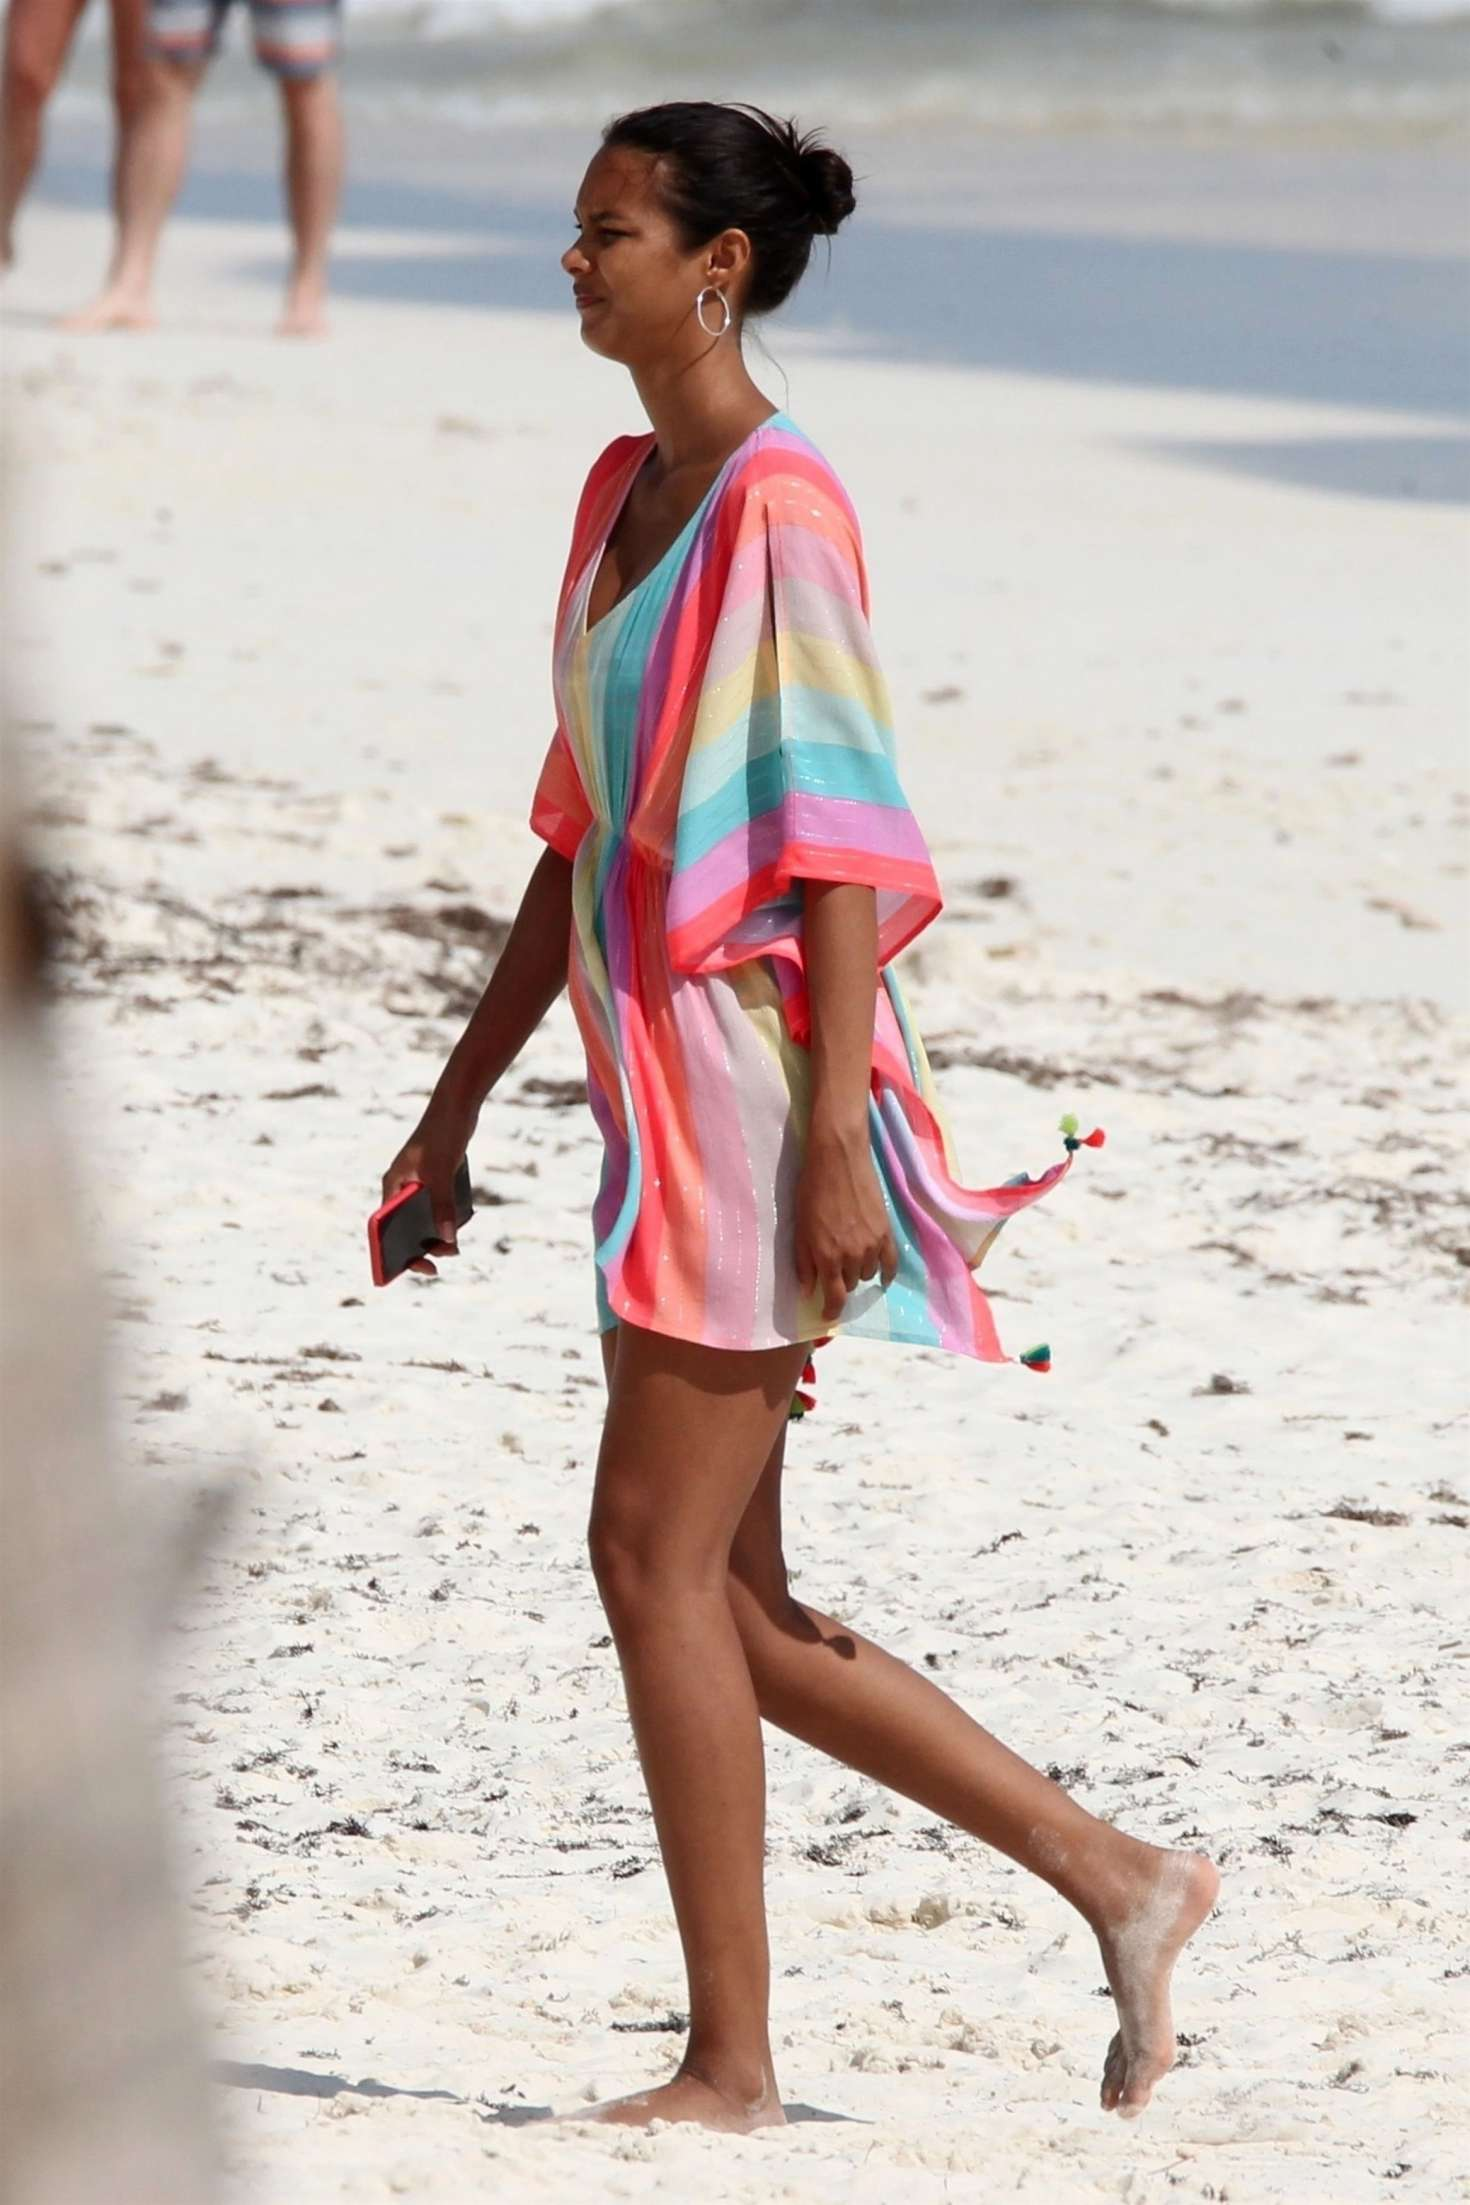 Lais Ribeiro on the beach in Tulum